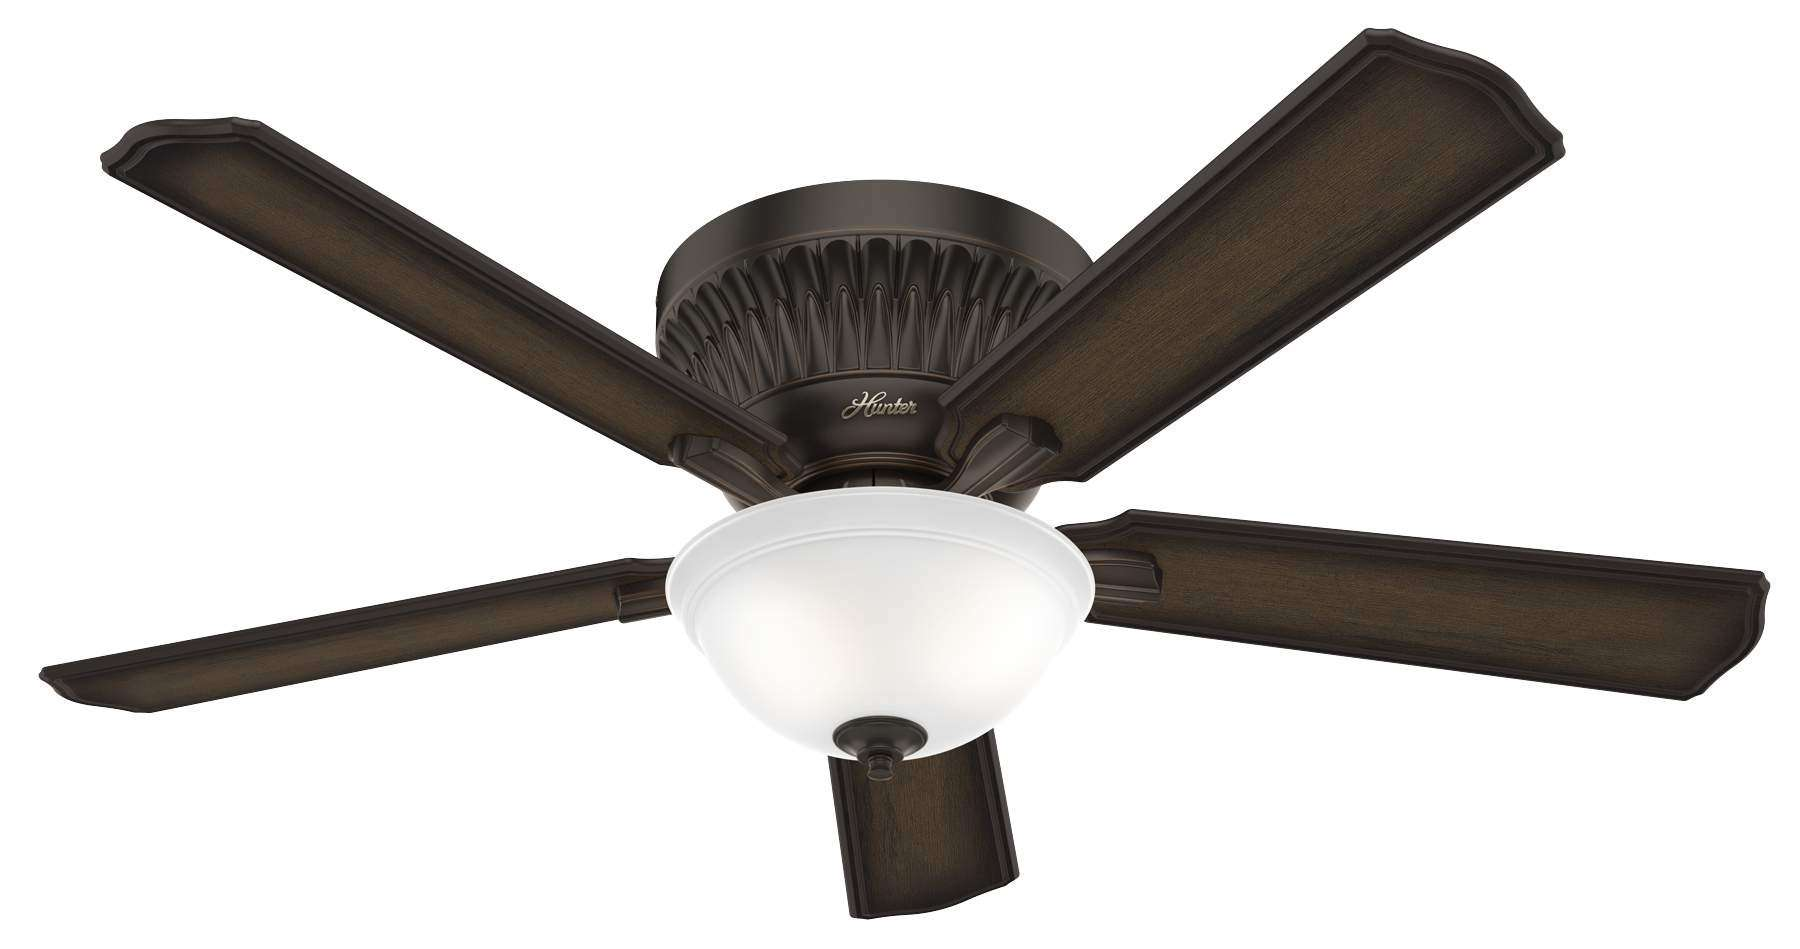 Hunter Chauncey Ceiling Fan Model 59548 - Shown with Burnished Aged Maple Blades and Light